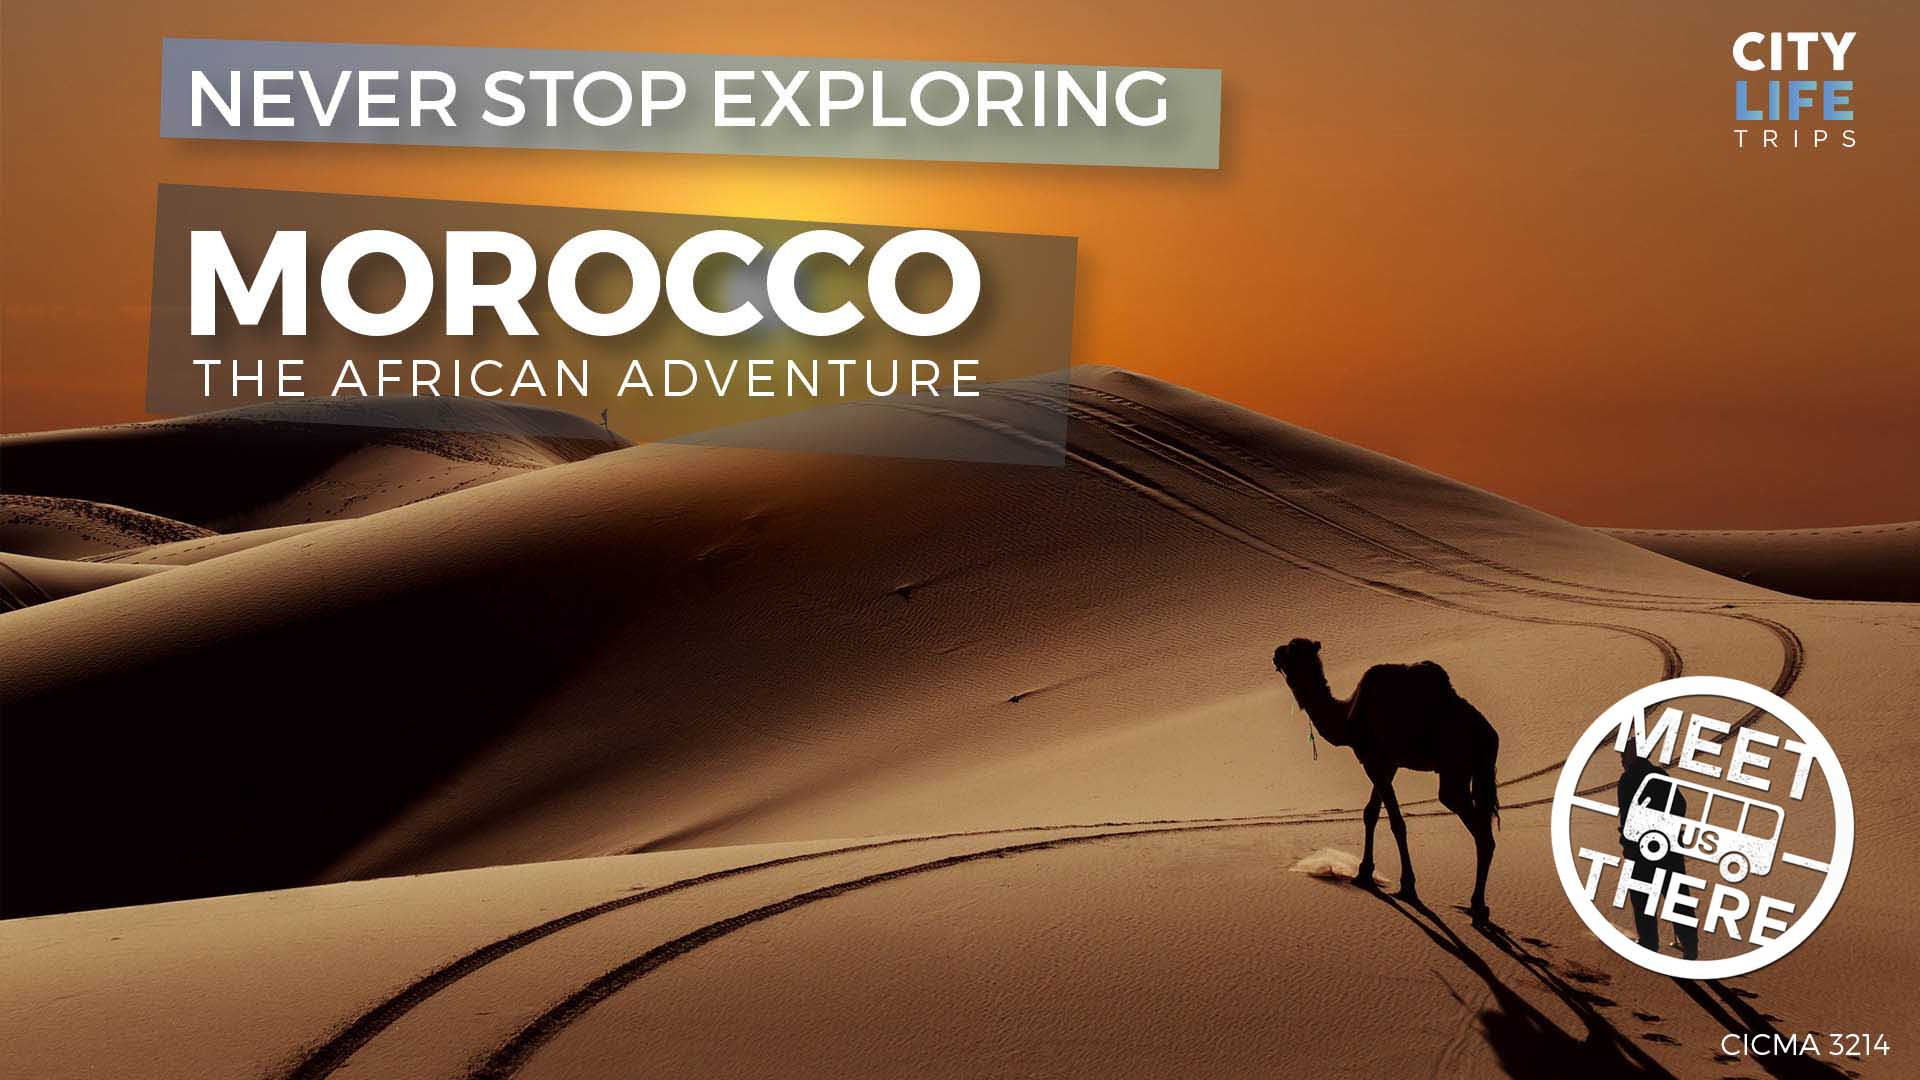 Morocco #2 – The African Adventure (Meet us there)